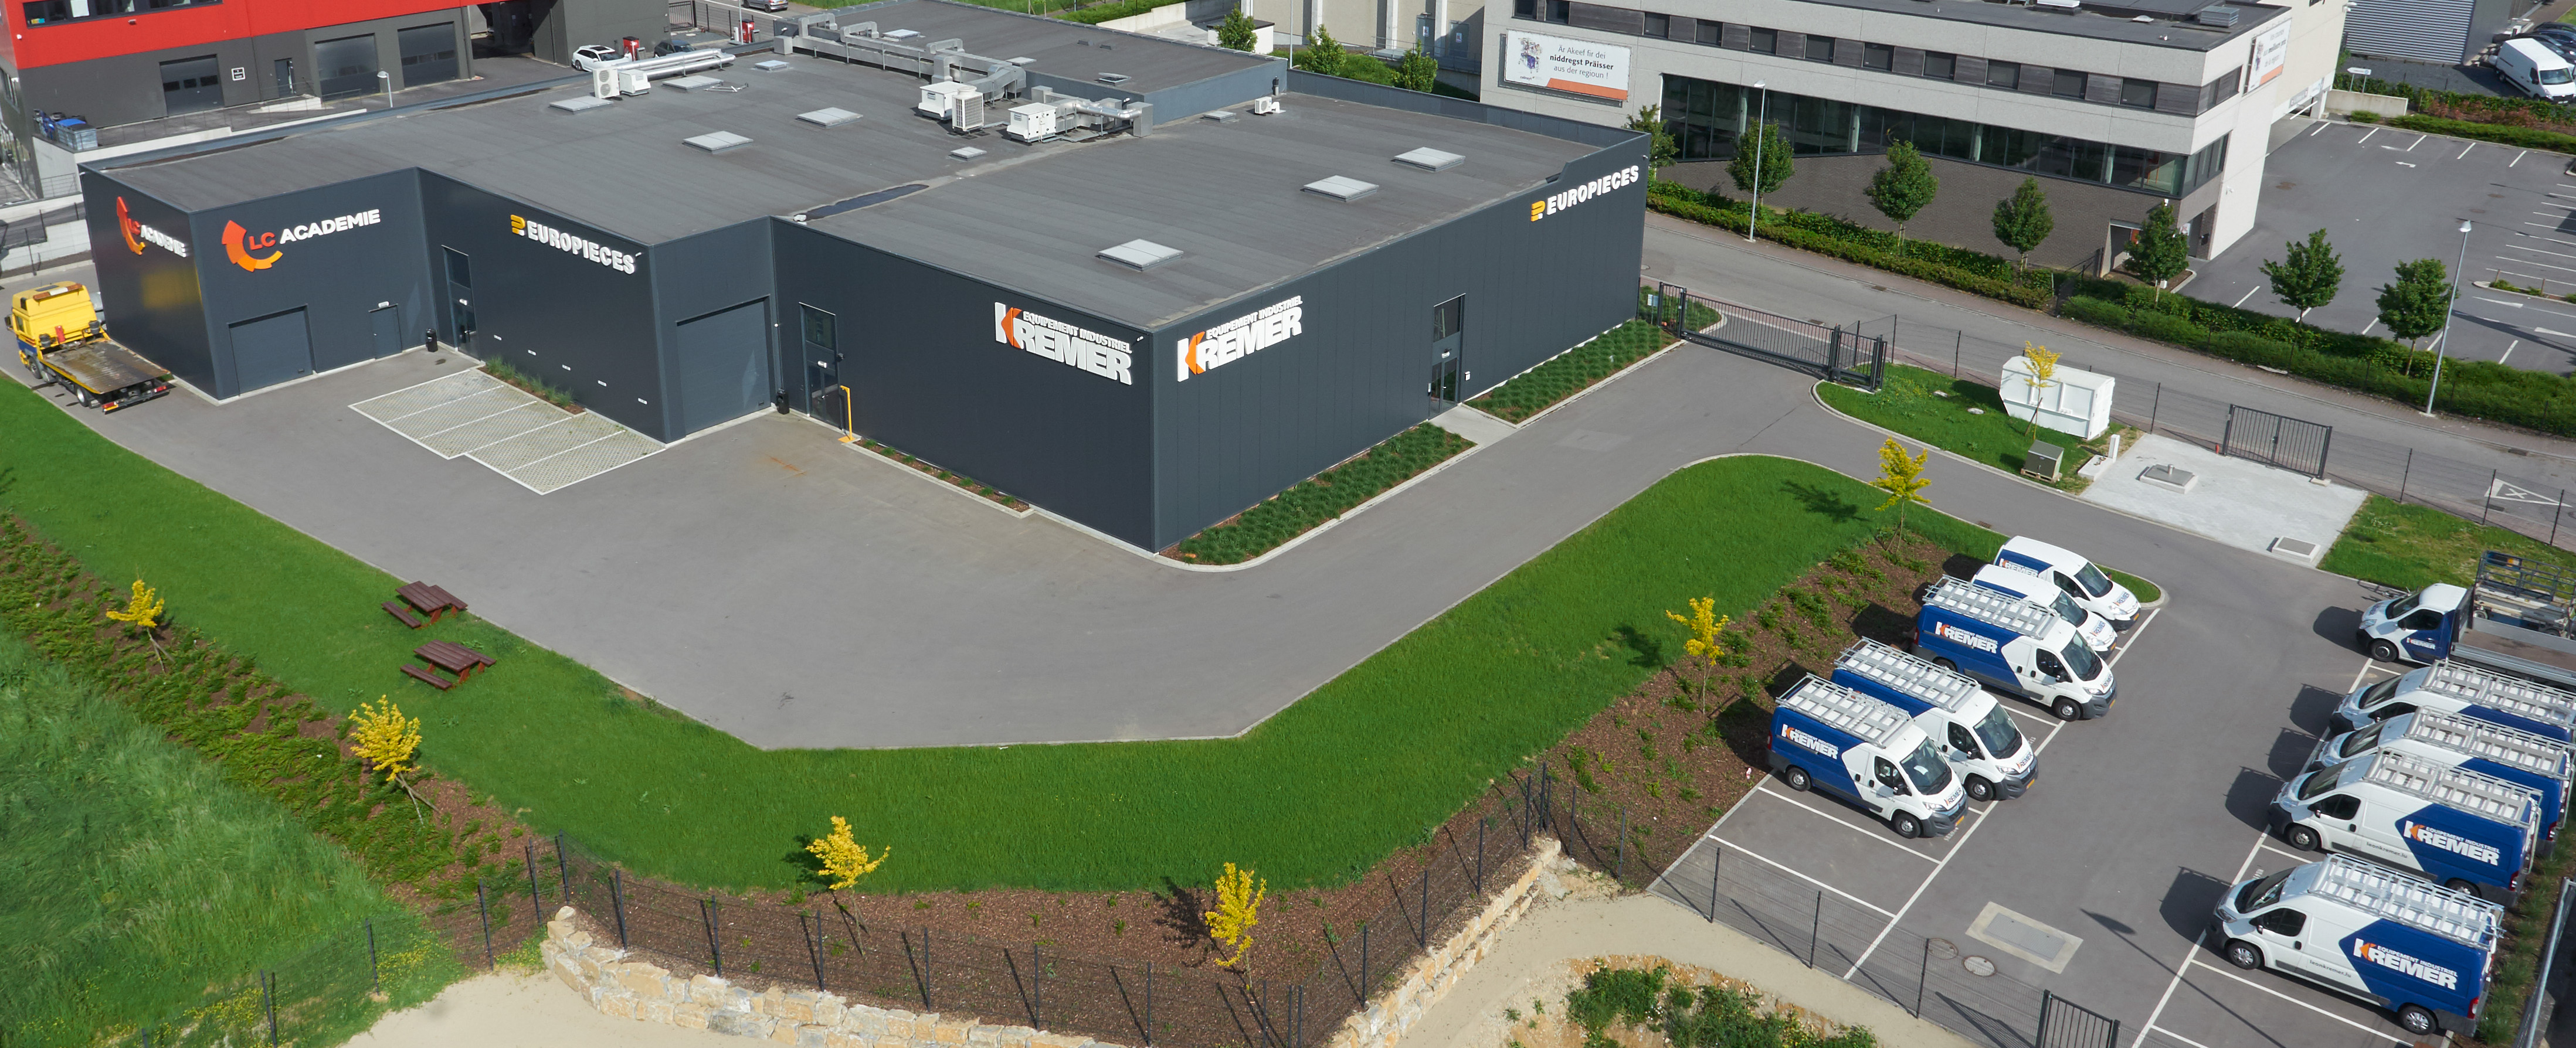 The Europieces Luxembourg S.A. site in Sassenheim located in Sassenheim in the canton of Esch on the Alzette. Photo: CLARK Europe GmbH